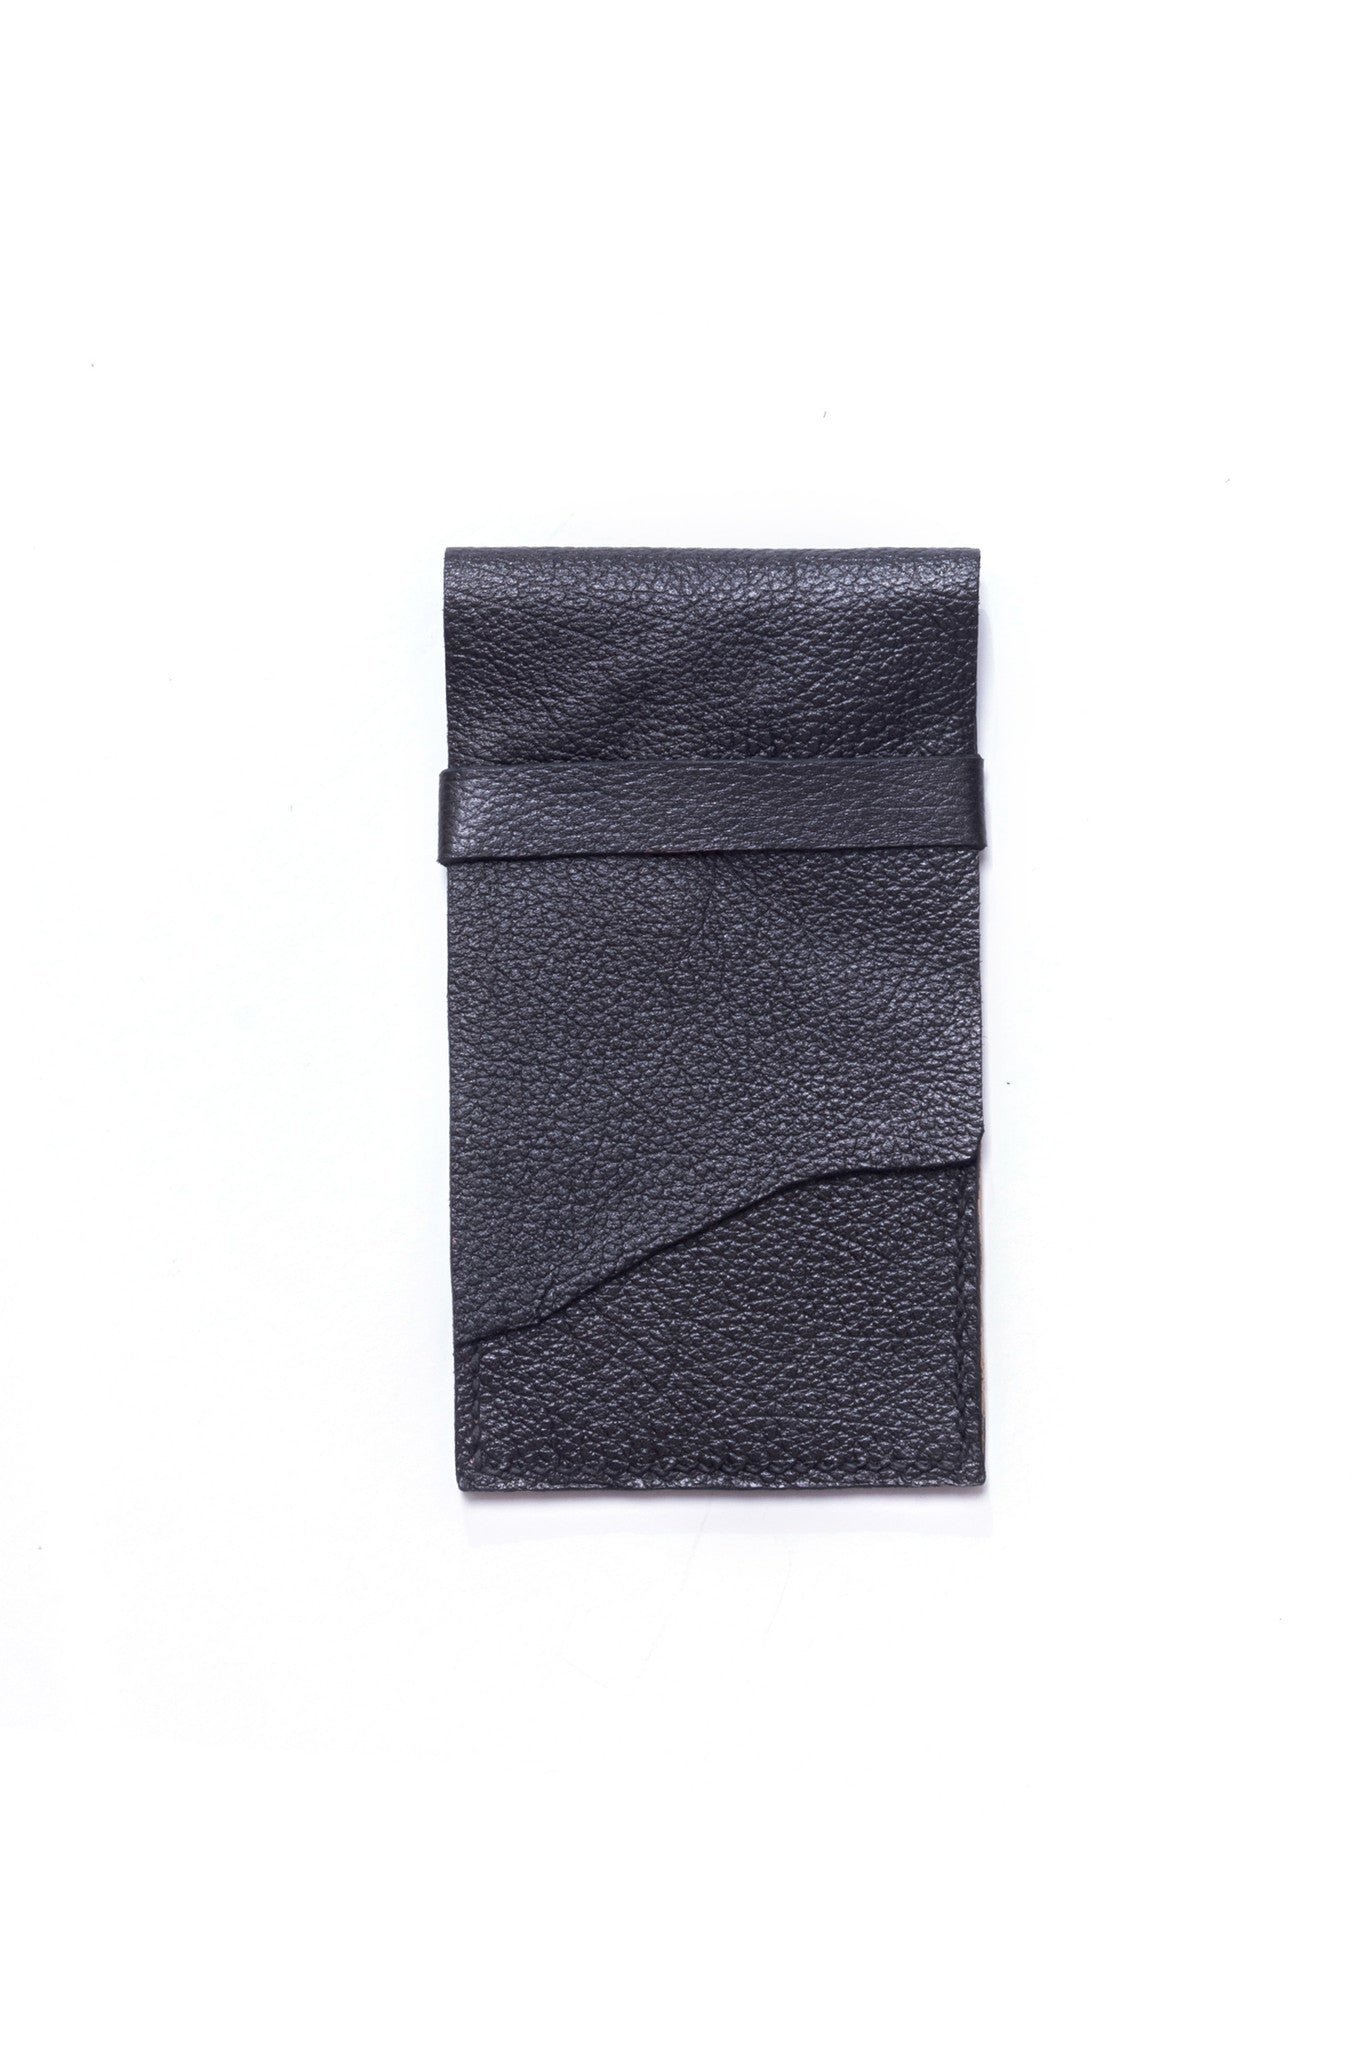 Stella Black & Gold Leather Raw iPhone Sleeve by Liana Rosa